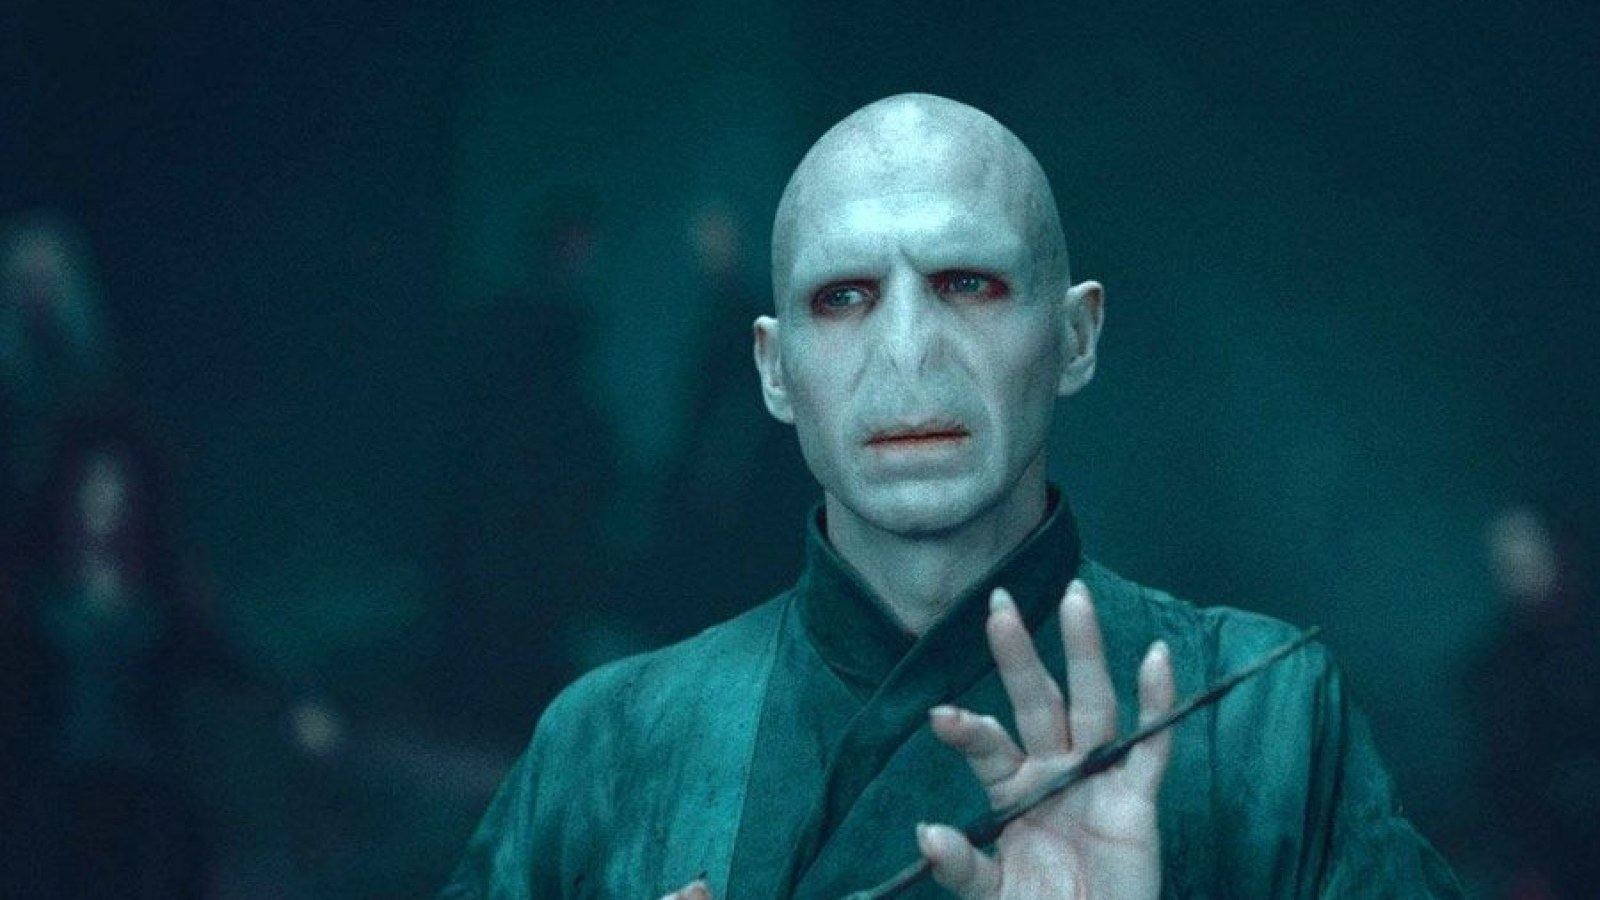 What It's Like to Share a Name With Lord Voldemort from 'Harry Potter'